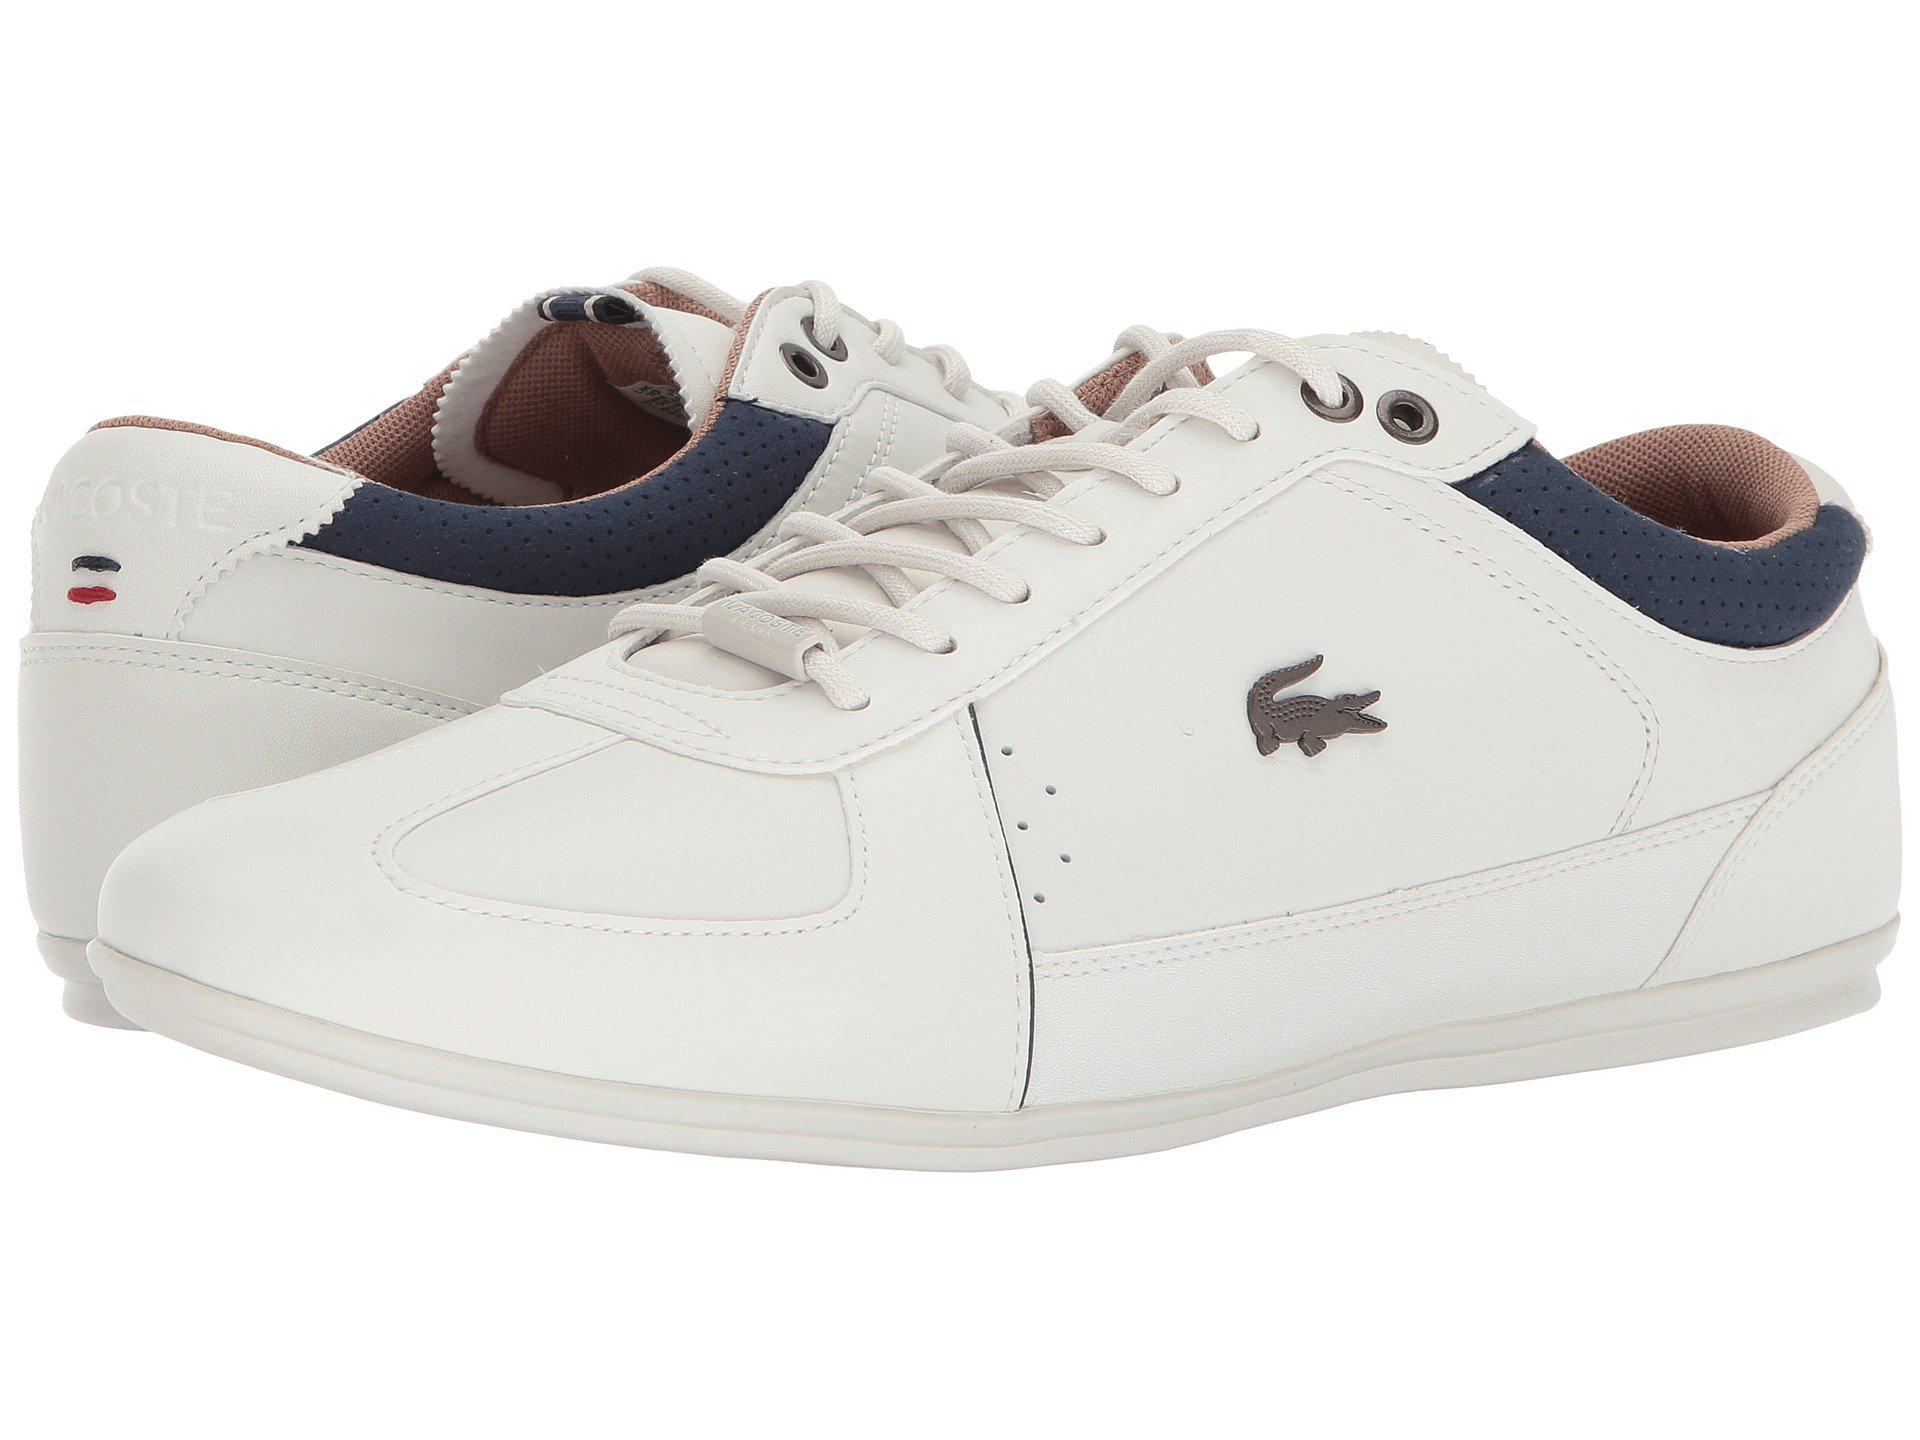 4f2f0dabc157a1 Lyst - Lacoste Evara 118 1 (off-white navy) Men s Shoes in White for Men